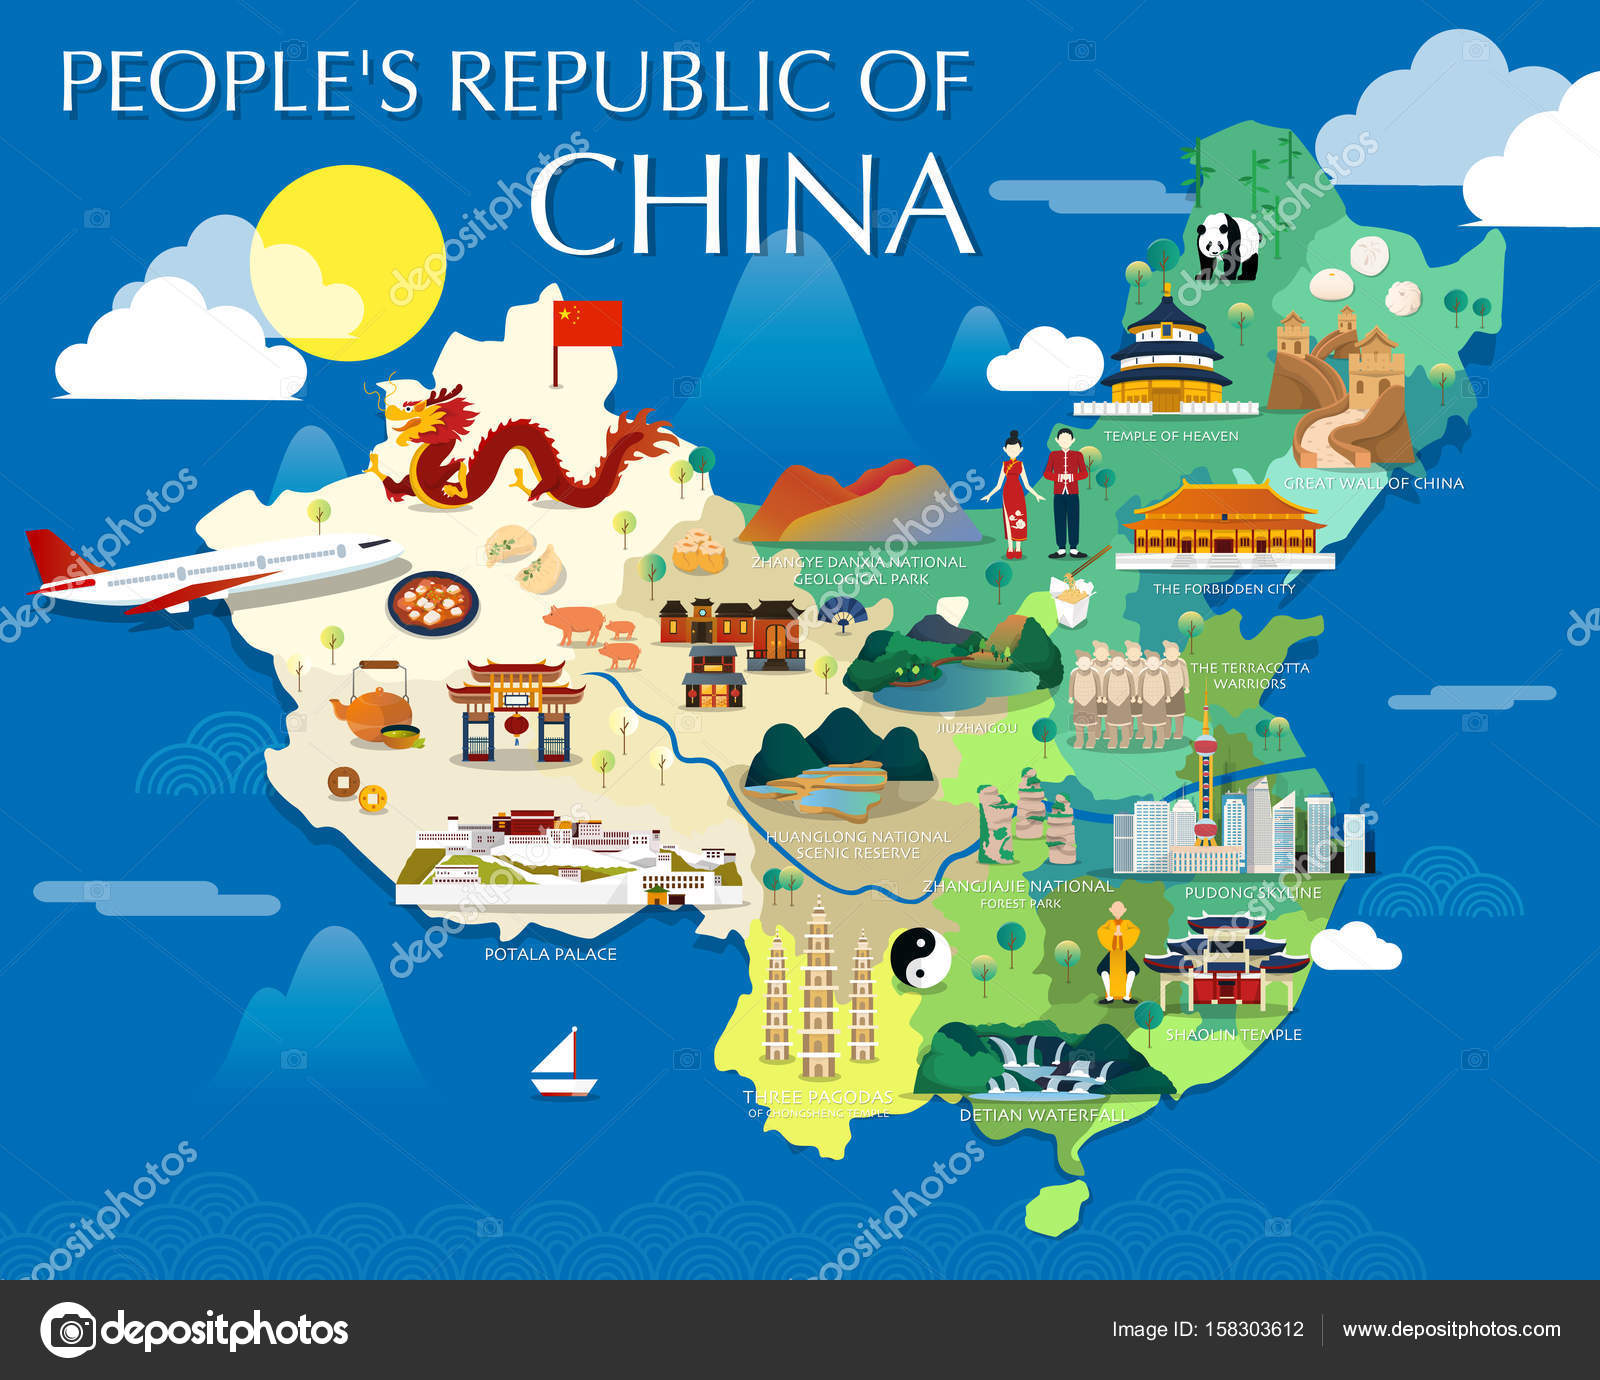 peoples republic of china 3 essay He has taught the subjects of legal system and legal method, constitutional law, administrative law, law and society, jurisprudence, the legal system of the people's republic of china, research methodology, and the use of chinese in law.